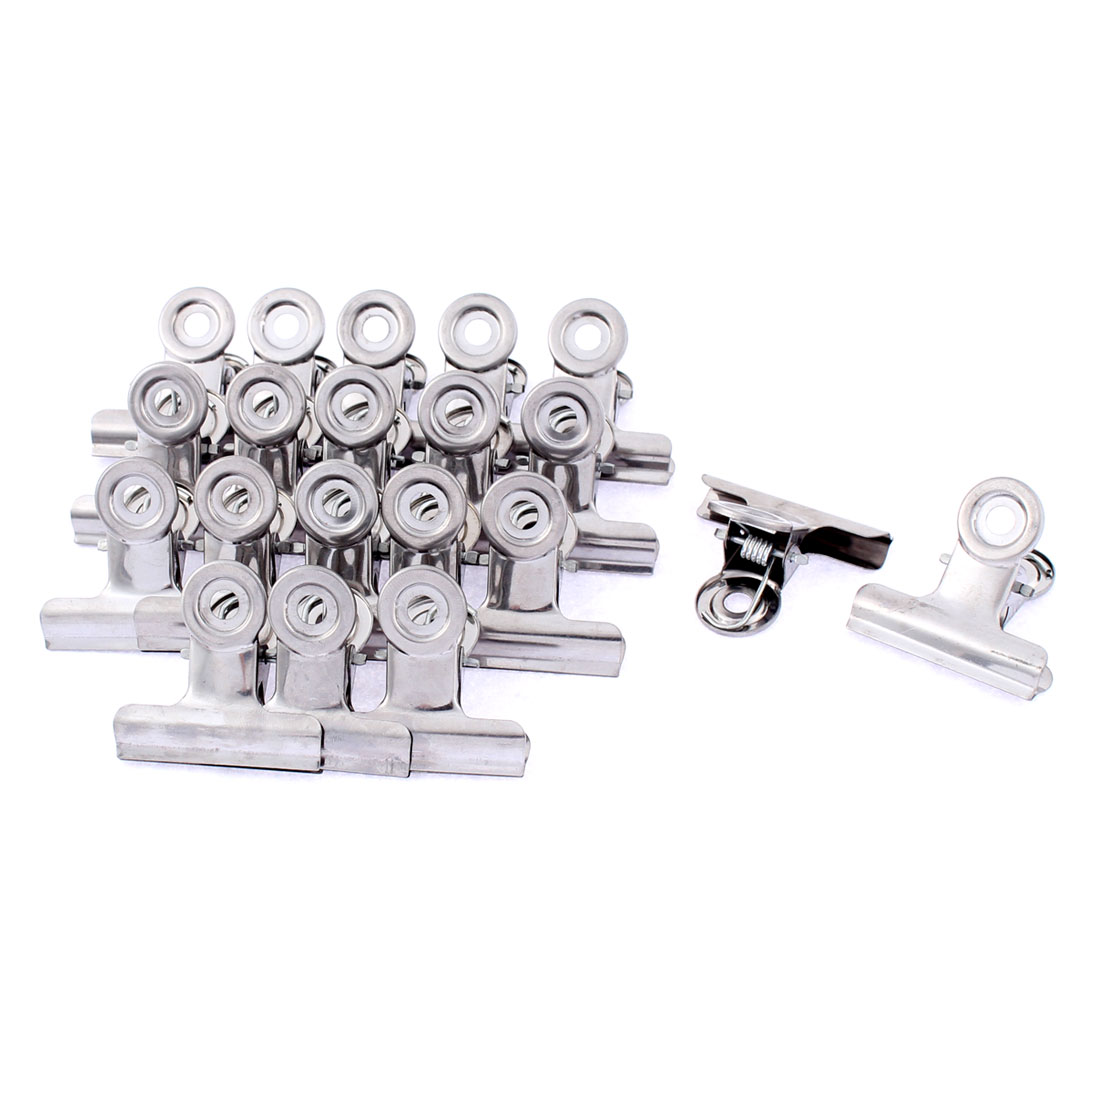 Stainless Steel Spring Loaded Clothes Pin Hanger 1.5 Inch Width 20 Pcs